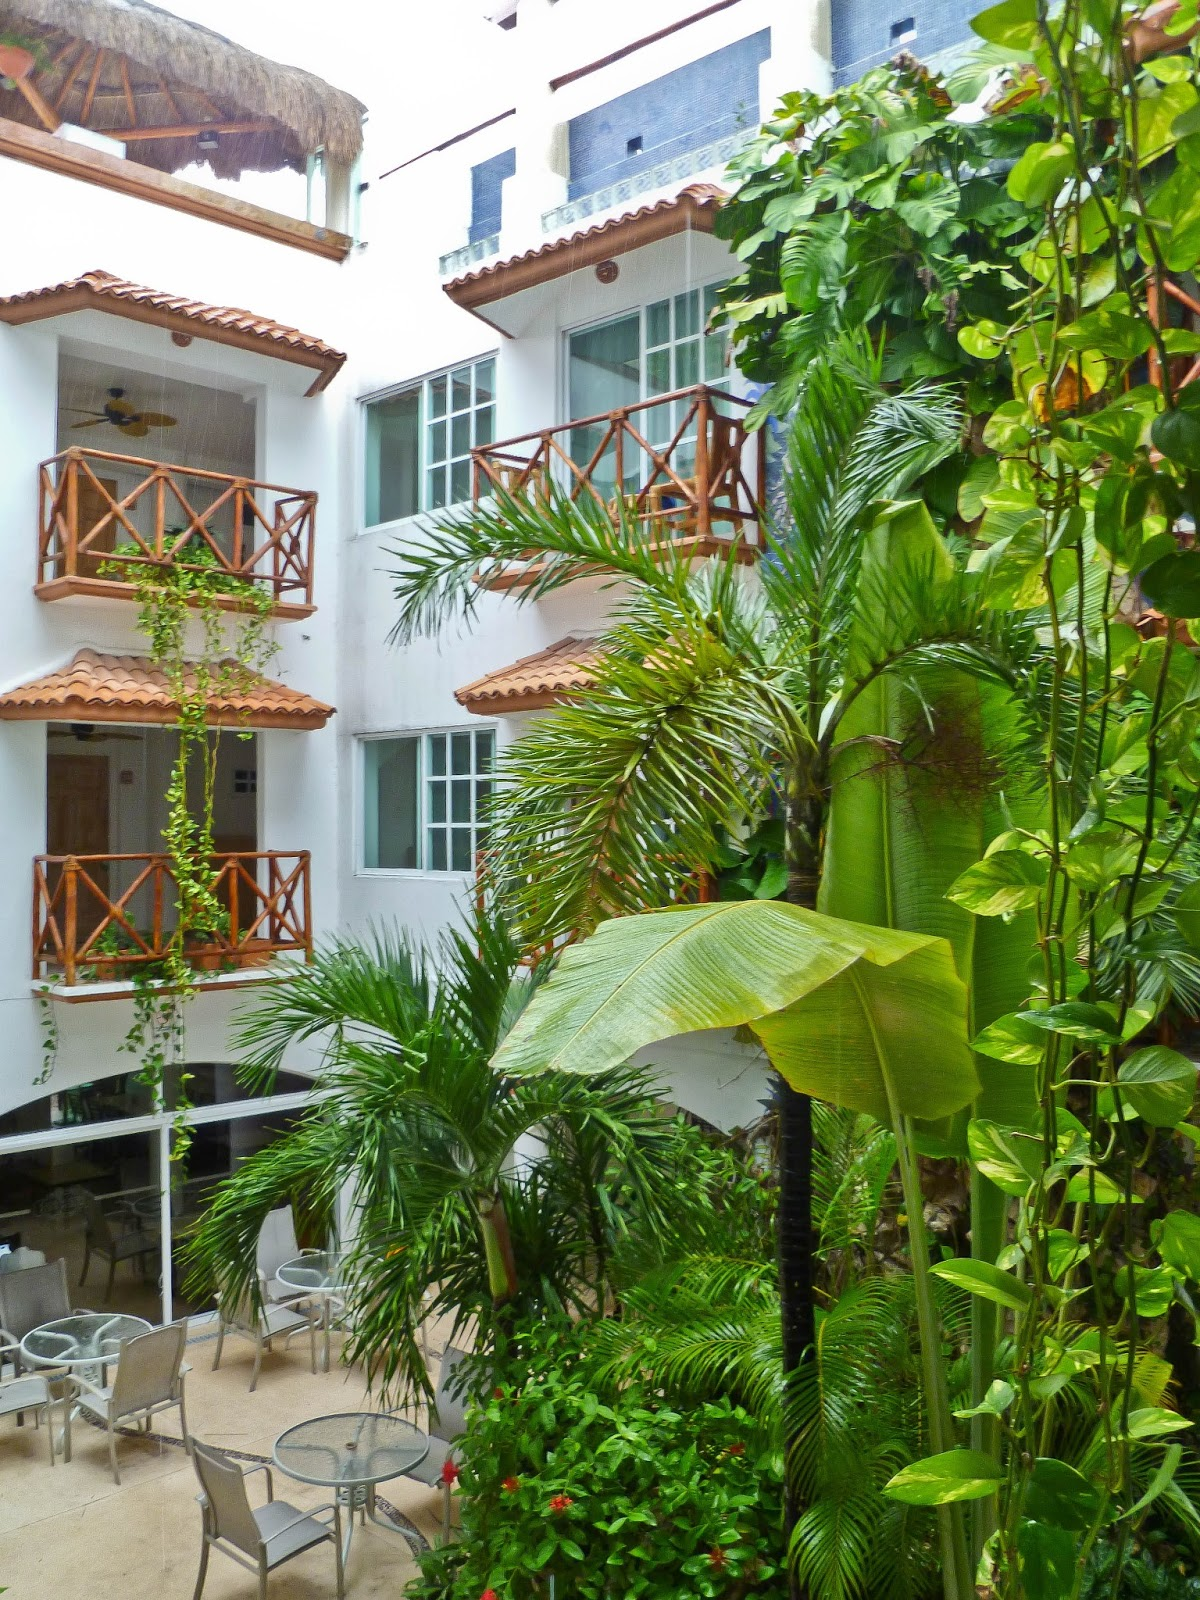 Where to stay in playa del carmen illusion boutique hotel for Illusion boutique hotel